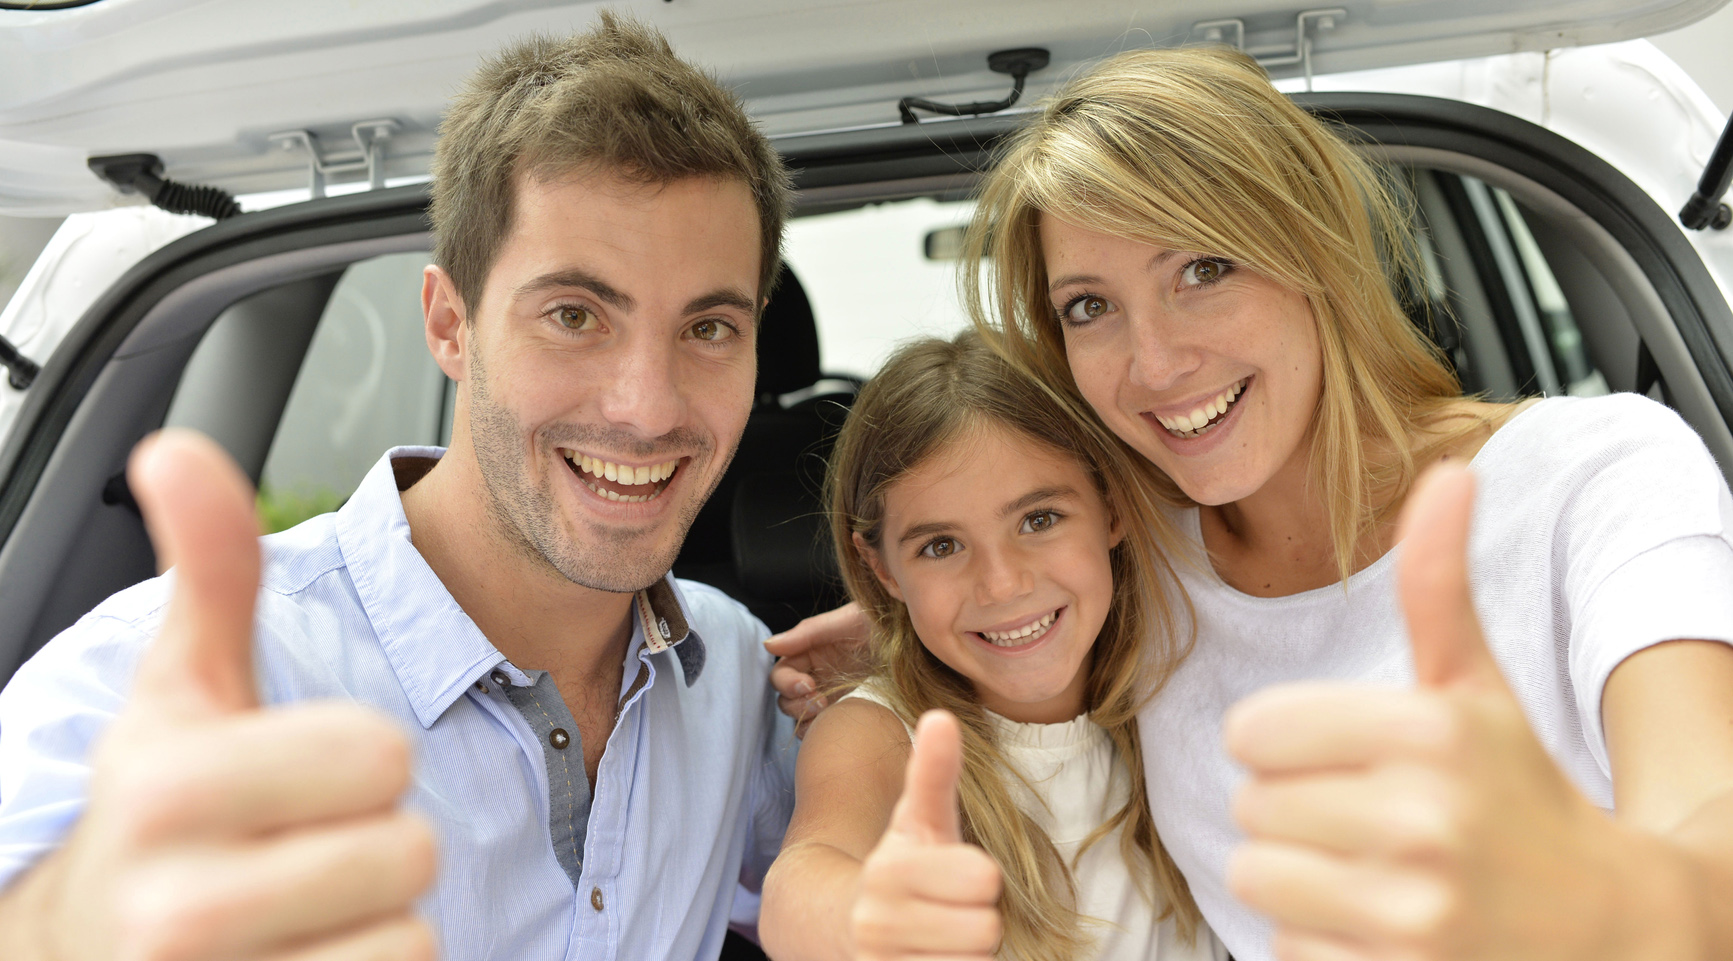 Family Thumbs Up in Car